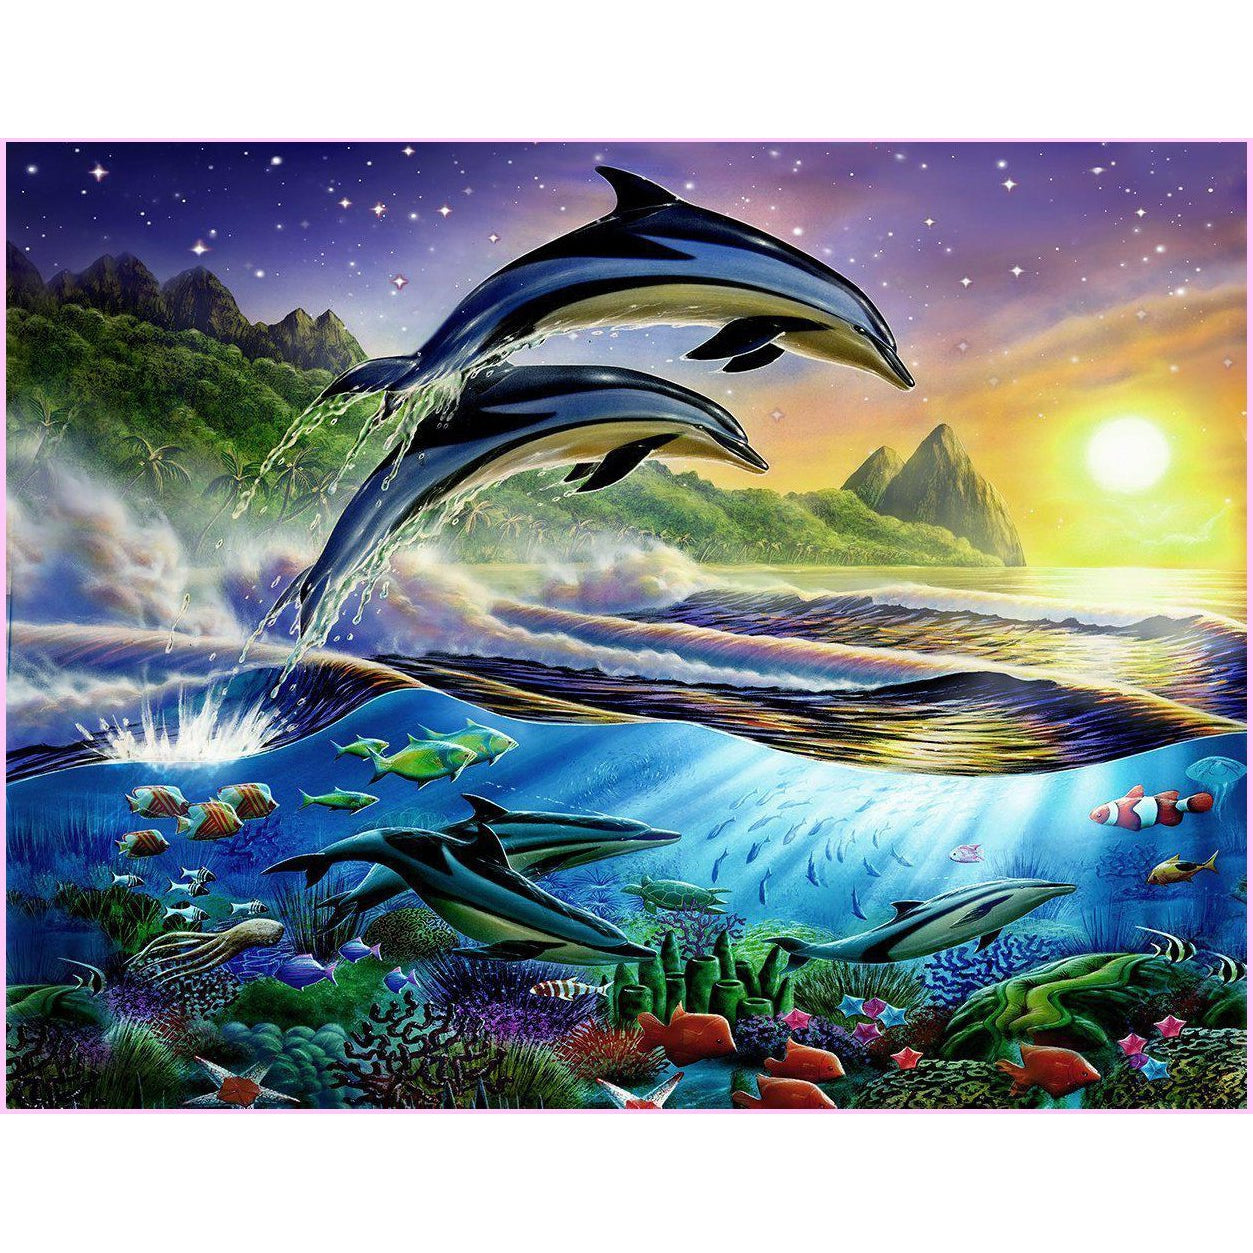 Atlantic Dolphins-Diamond Painting Kit USPS-30x40cm (12x16 in)-Square-Heartful Diamonds